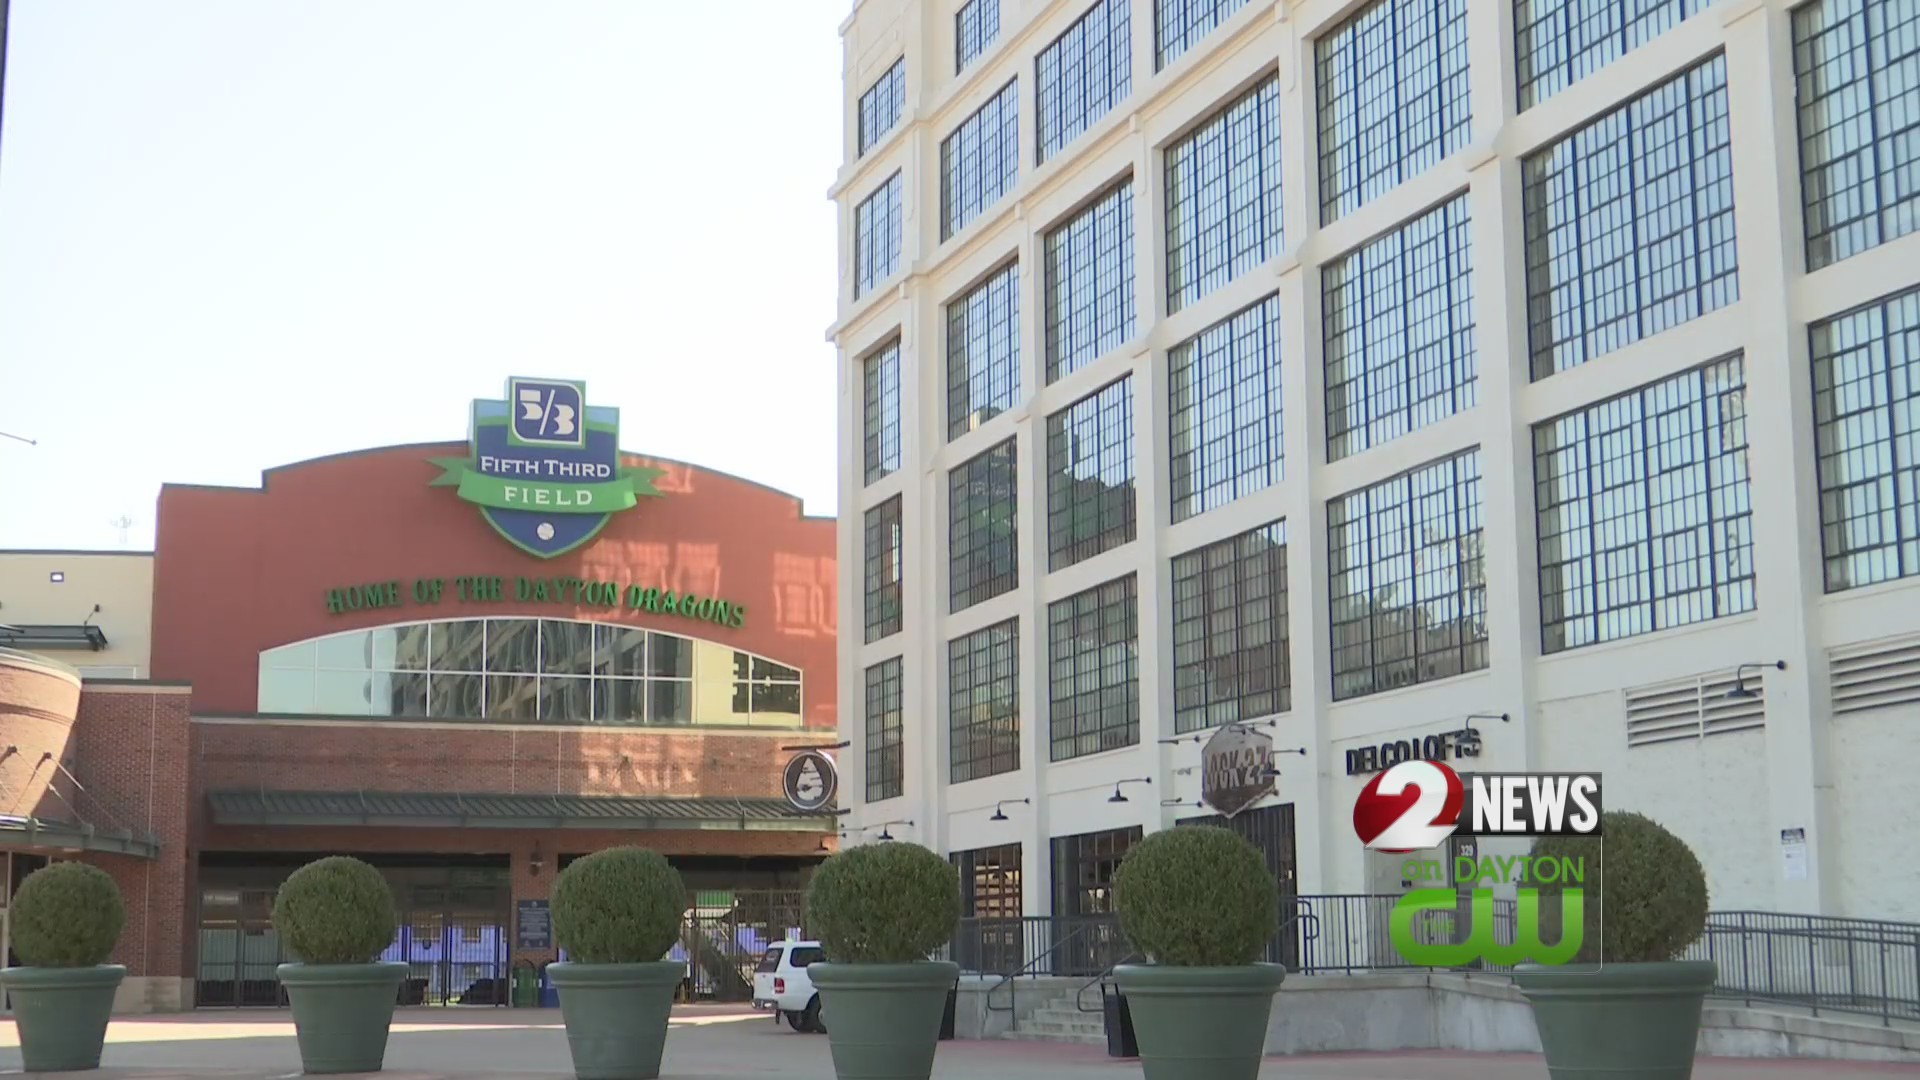 Dayton Dragons work to meet the needs of the community for 20 years